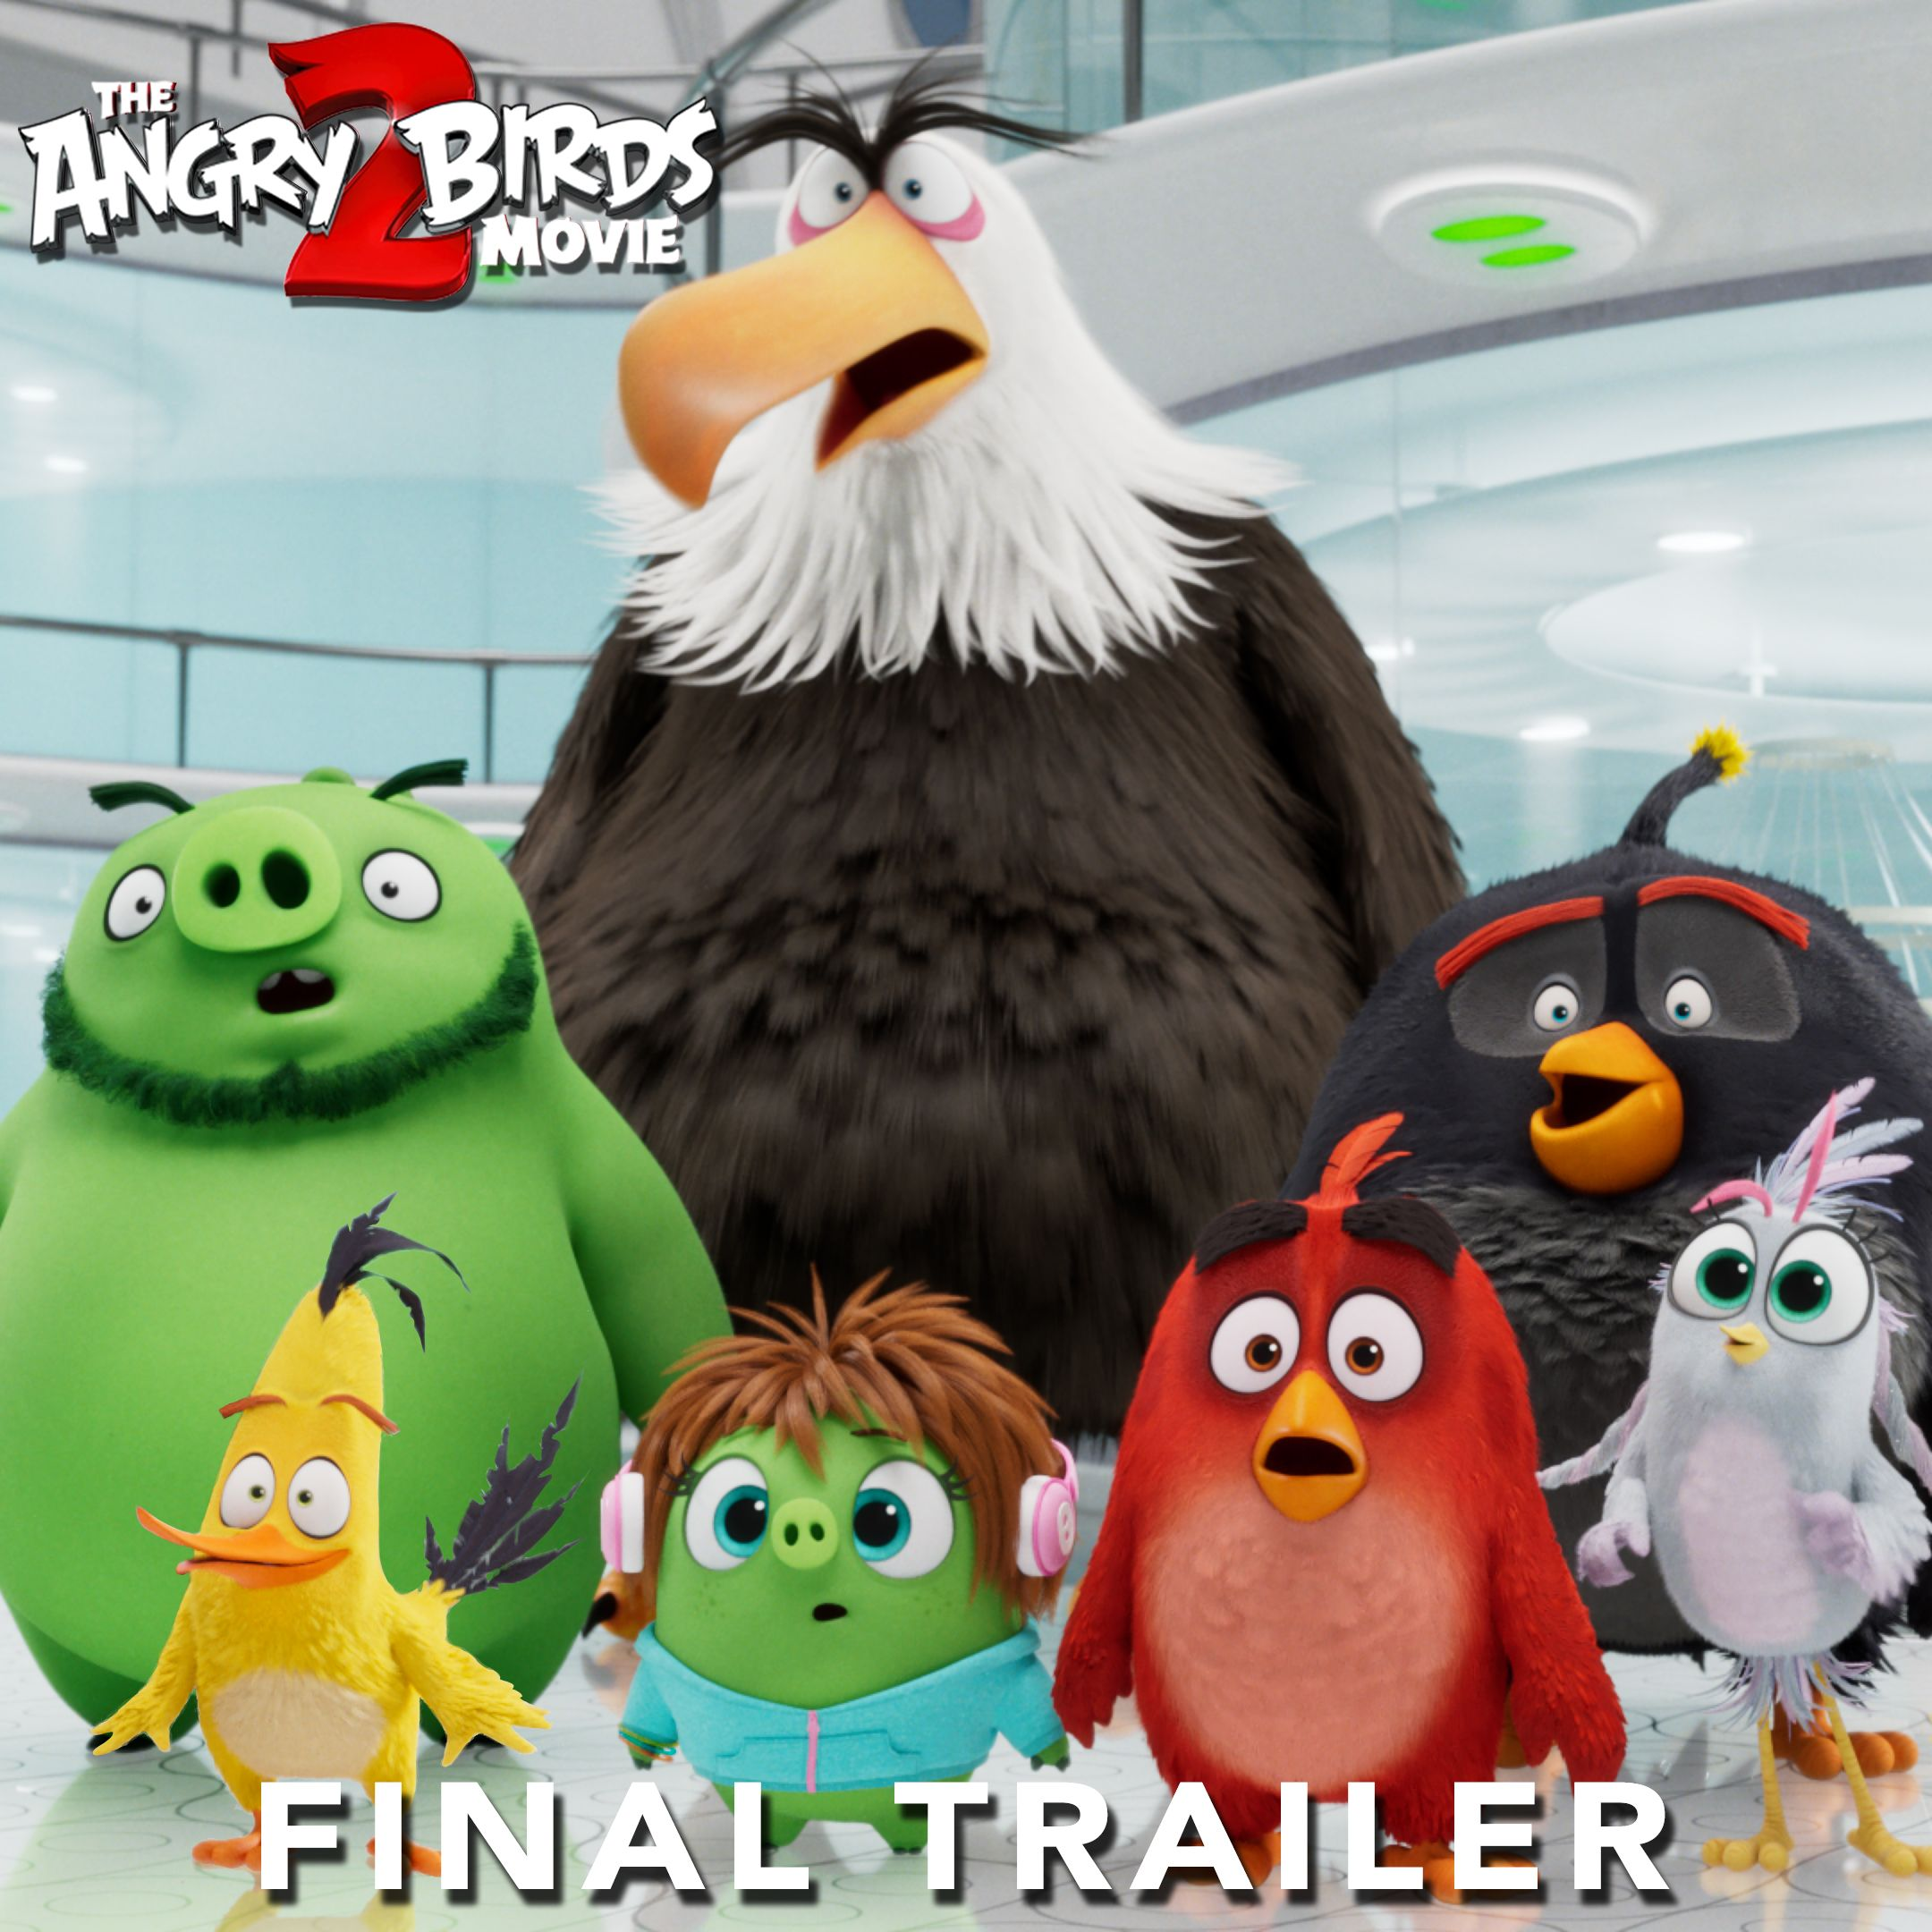 The Angry Birds Movie 2 Final Trailer Video Angry Birds Movie Angry Birds 2 Movie Angry Birds